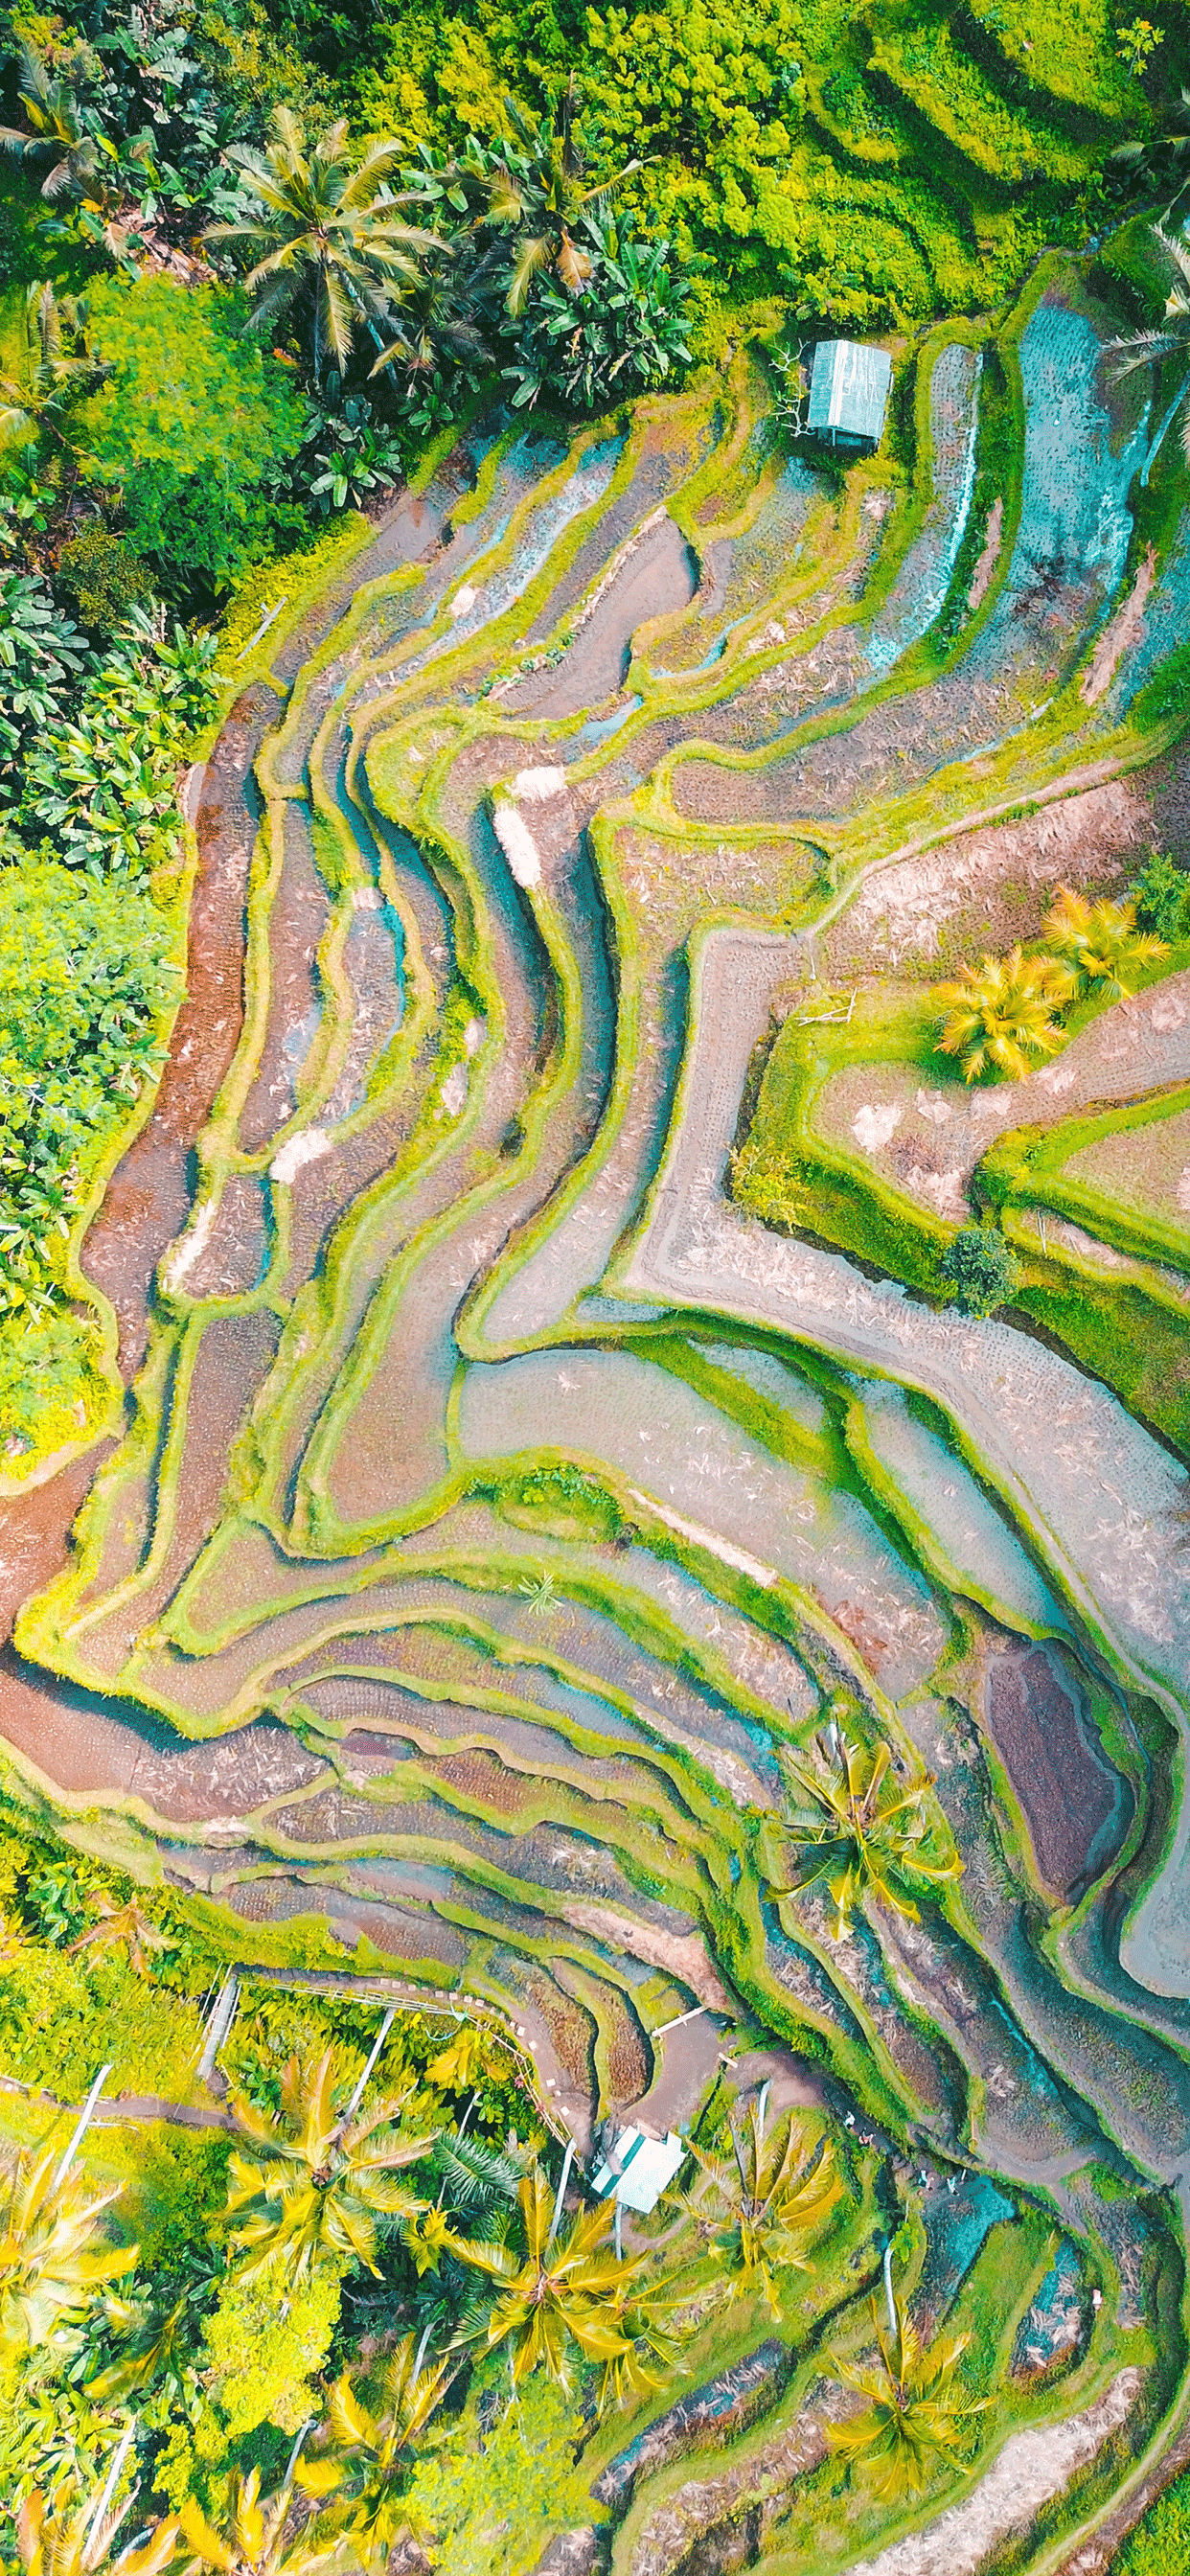 iPhone wallpapers ubud indonesia rice terrace Fonds d'écran iPhone du 09/05/2019